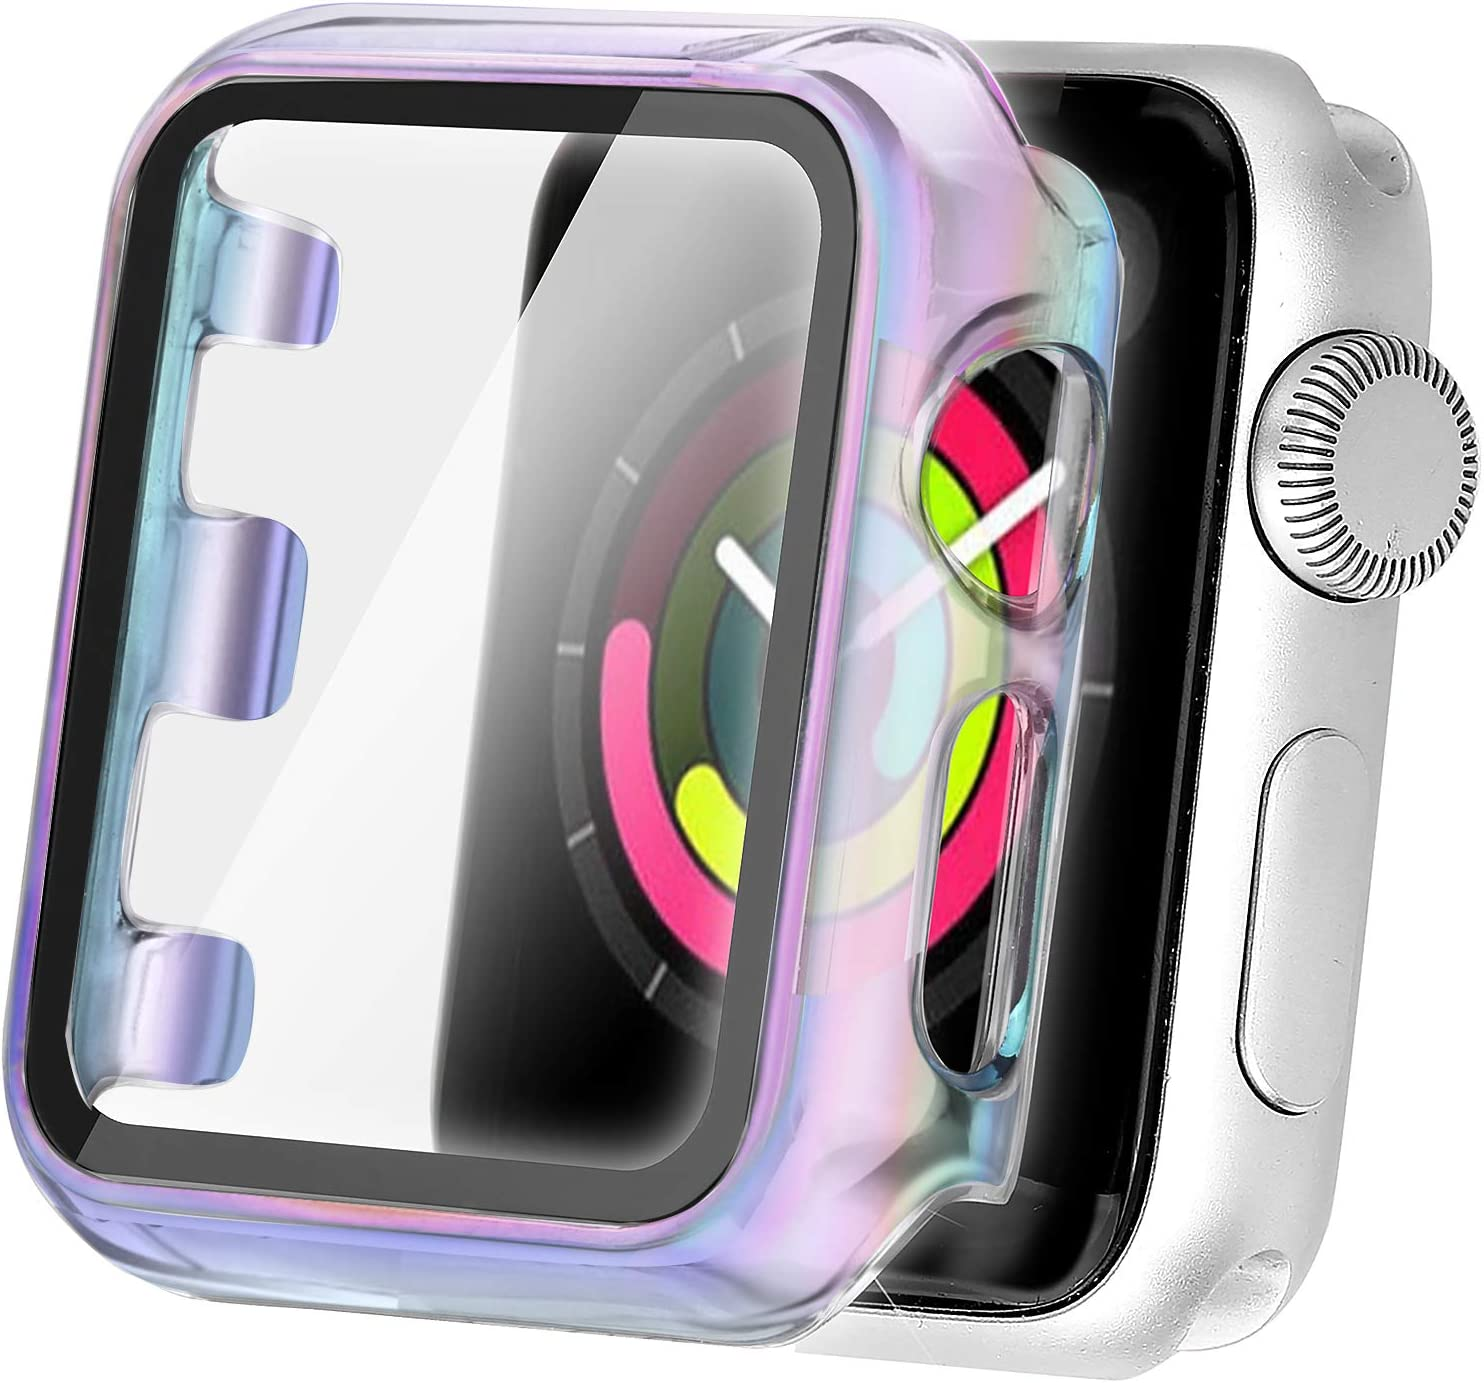 Secbolt 38mm Case Compatible Apple Watch Band with Built in Tempered Glass Screen Protector- All Around Protective Case for iWatch Series 3/2/1, Translucent Colorful(38mm)